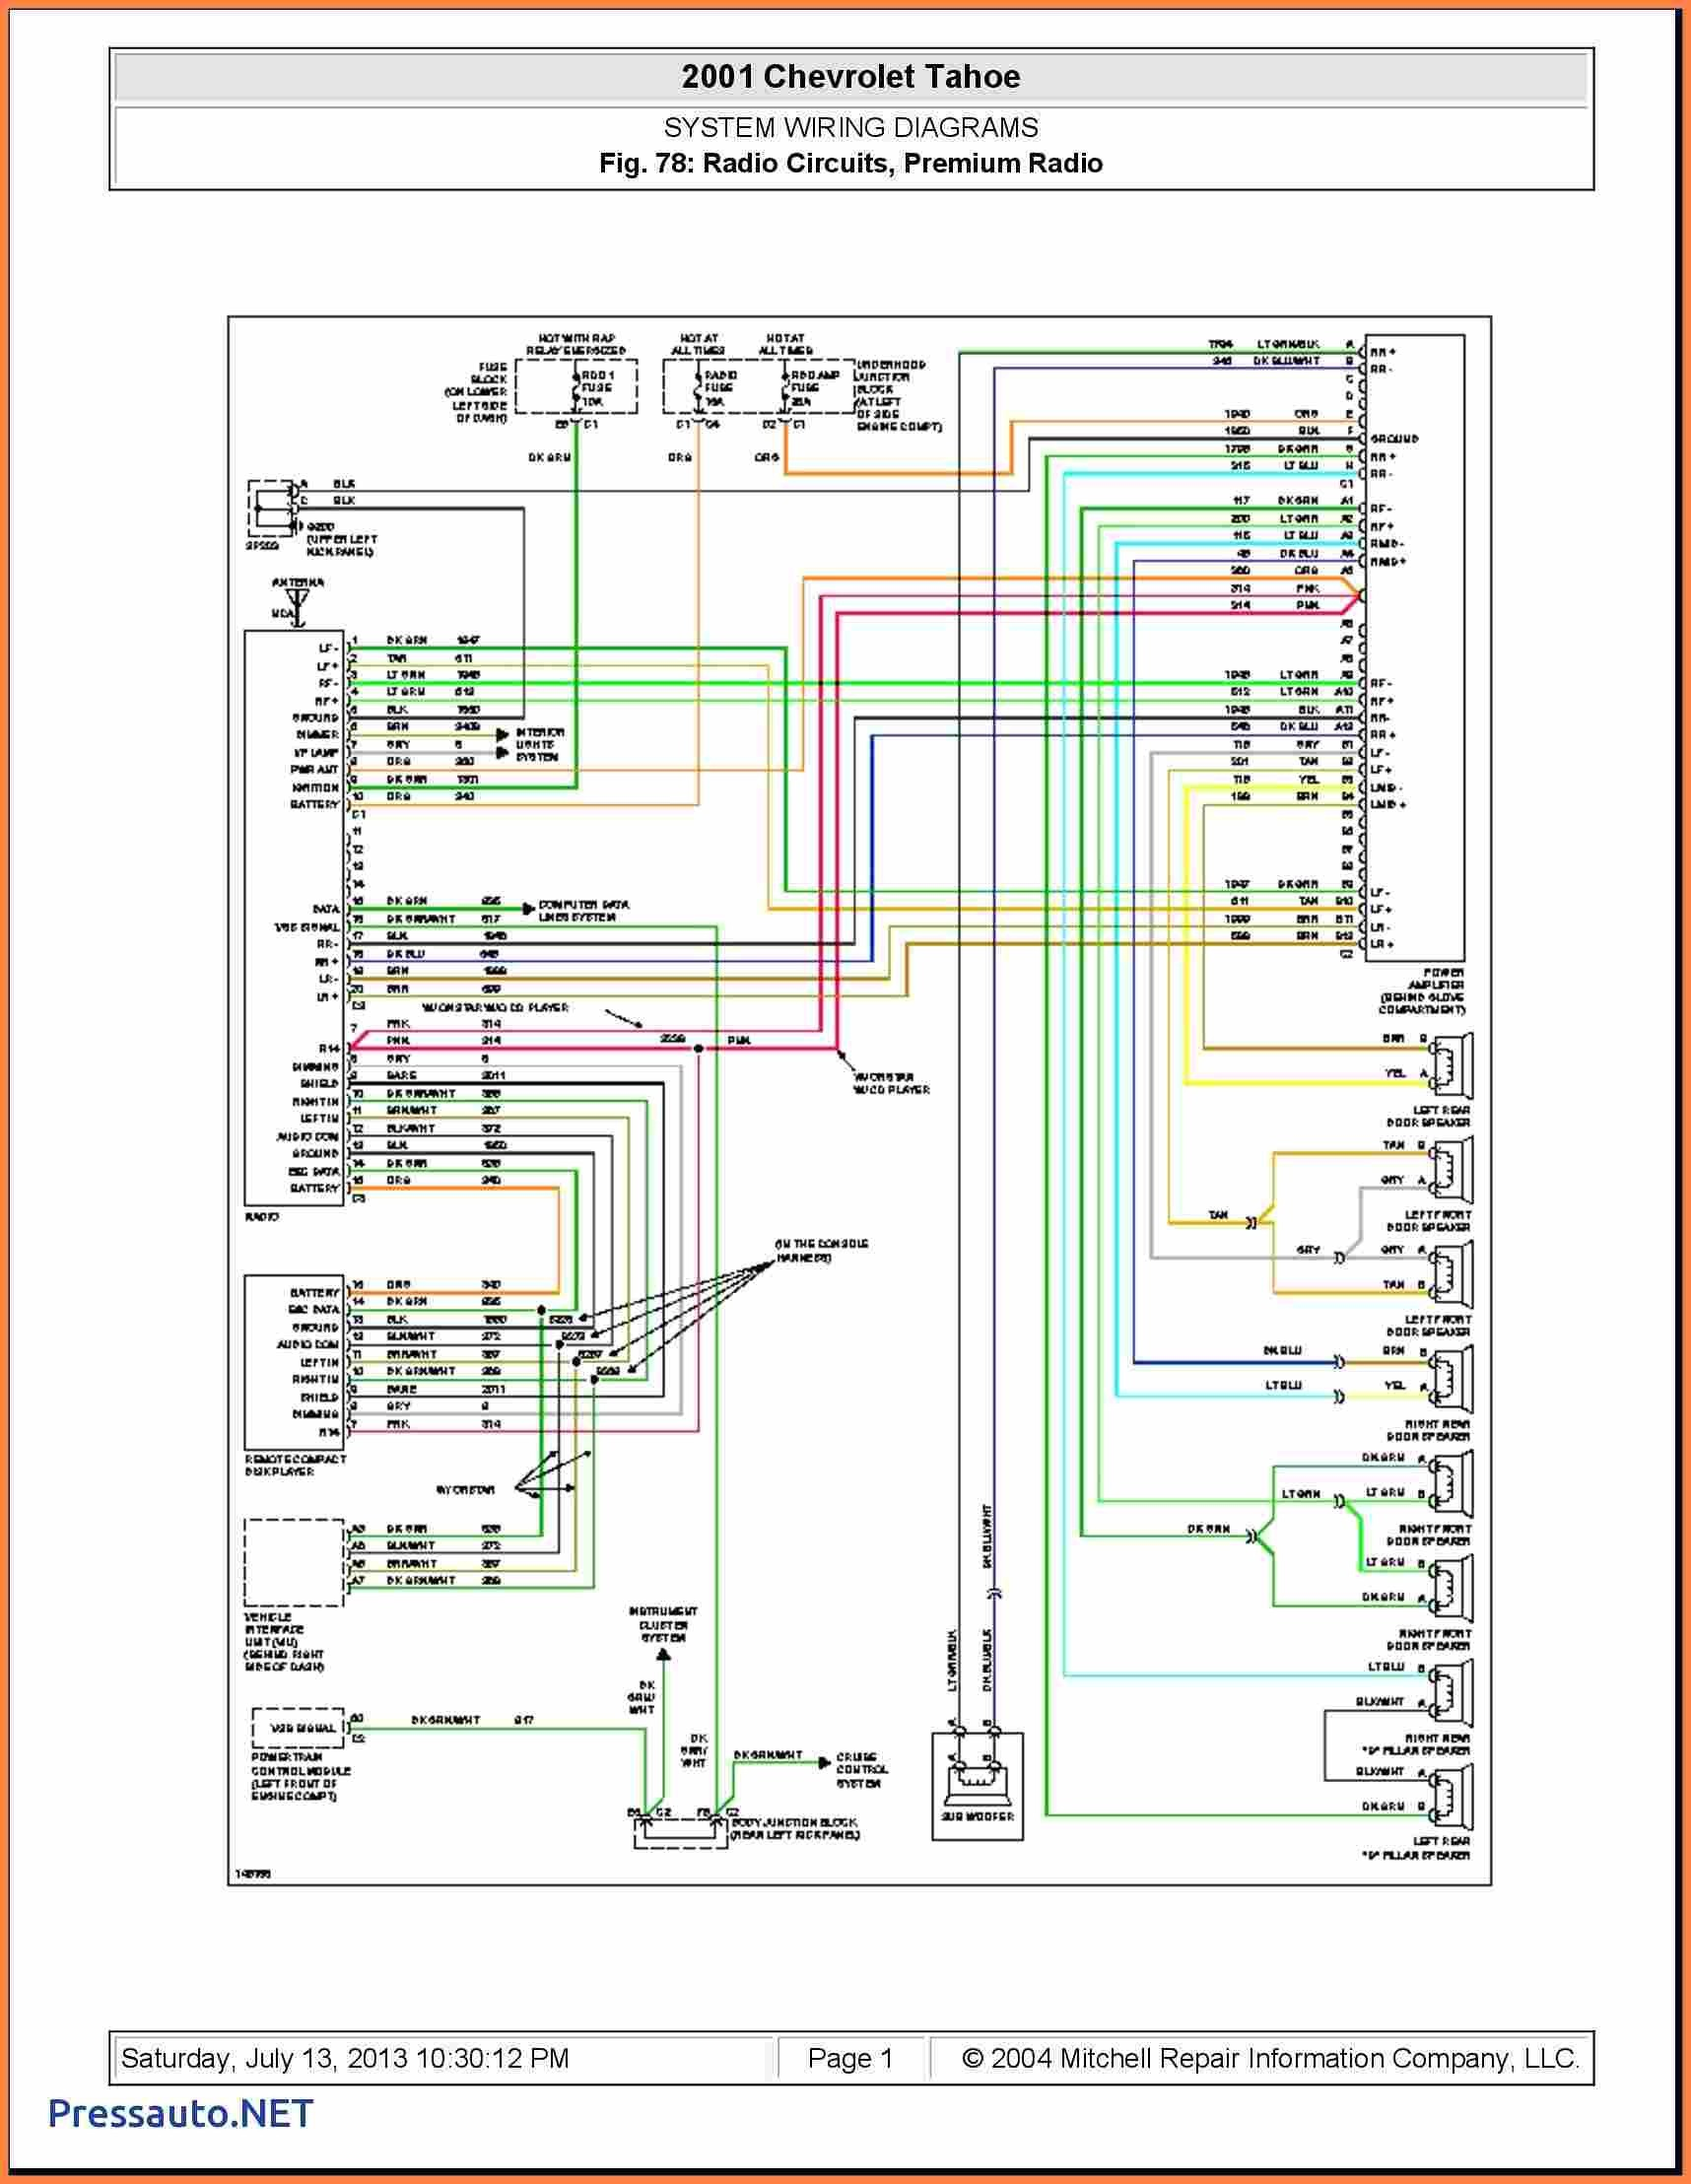 2001 Chevy Impala 3 8 Engine Diagram Chevy Trailblazer Radio Wiring Diagram Shahsramblings Of 2001 Chevy Impala 3 8 Engine Diagram